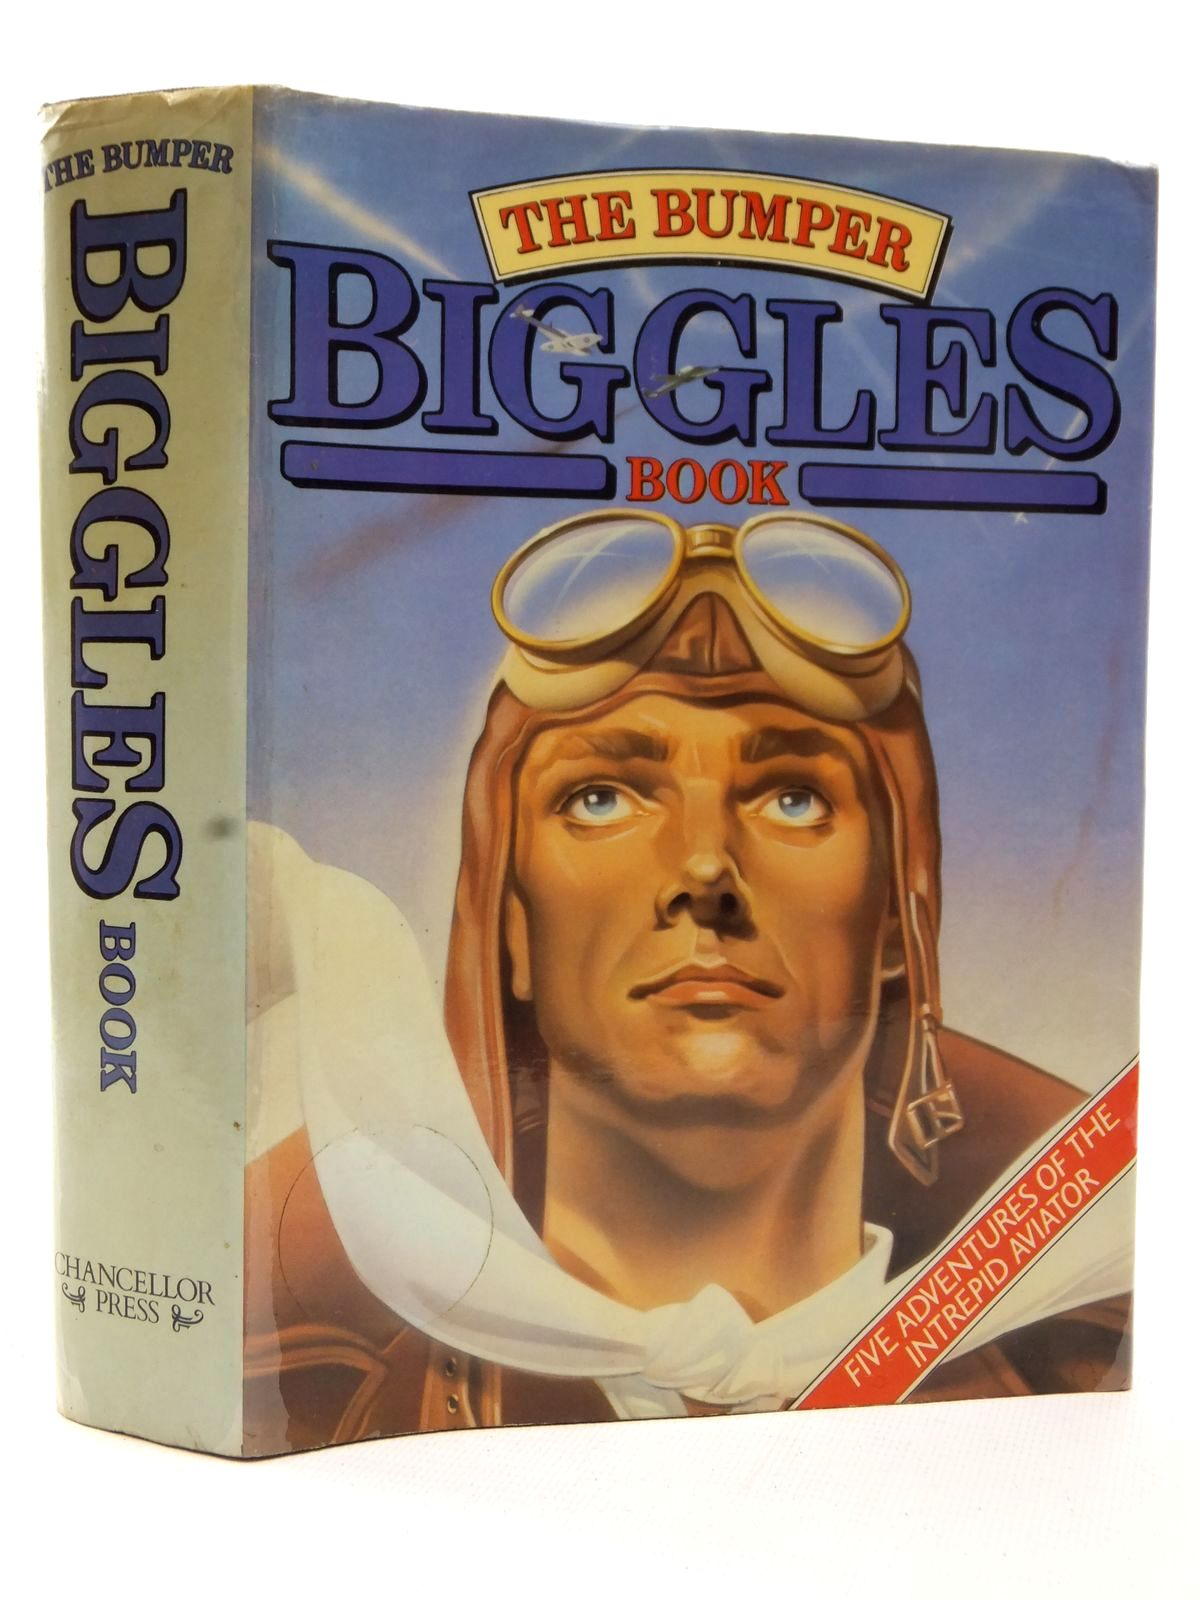 Photo of THE BUMPER BIGGLES BOOK written by Johns, W.E. published by Chancellor Press (STOCK CODE: 2123150)  for sale by Stella & Rose's Books